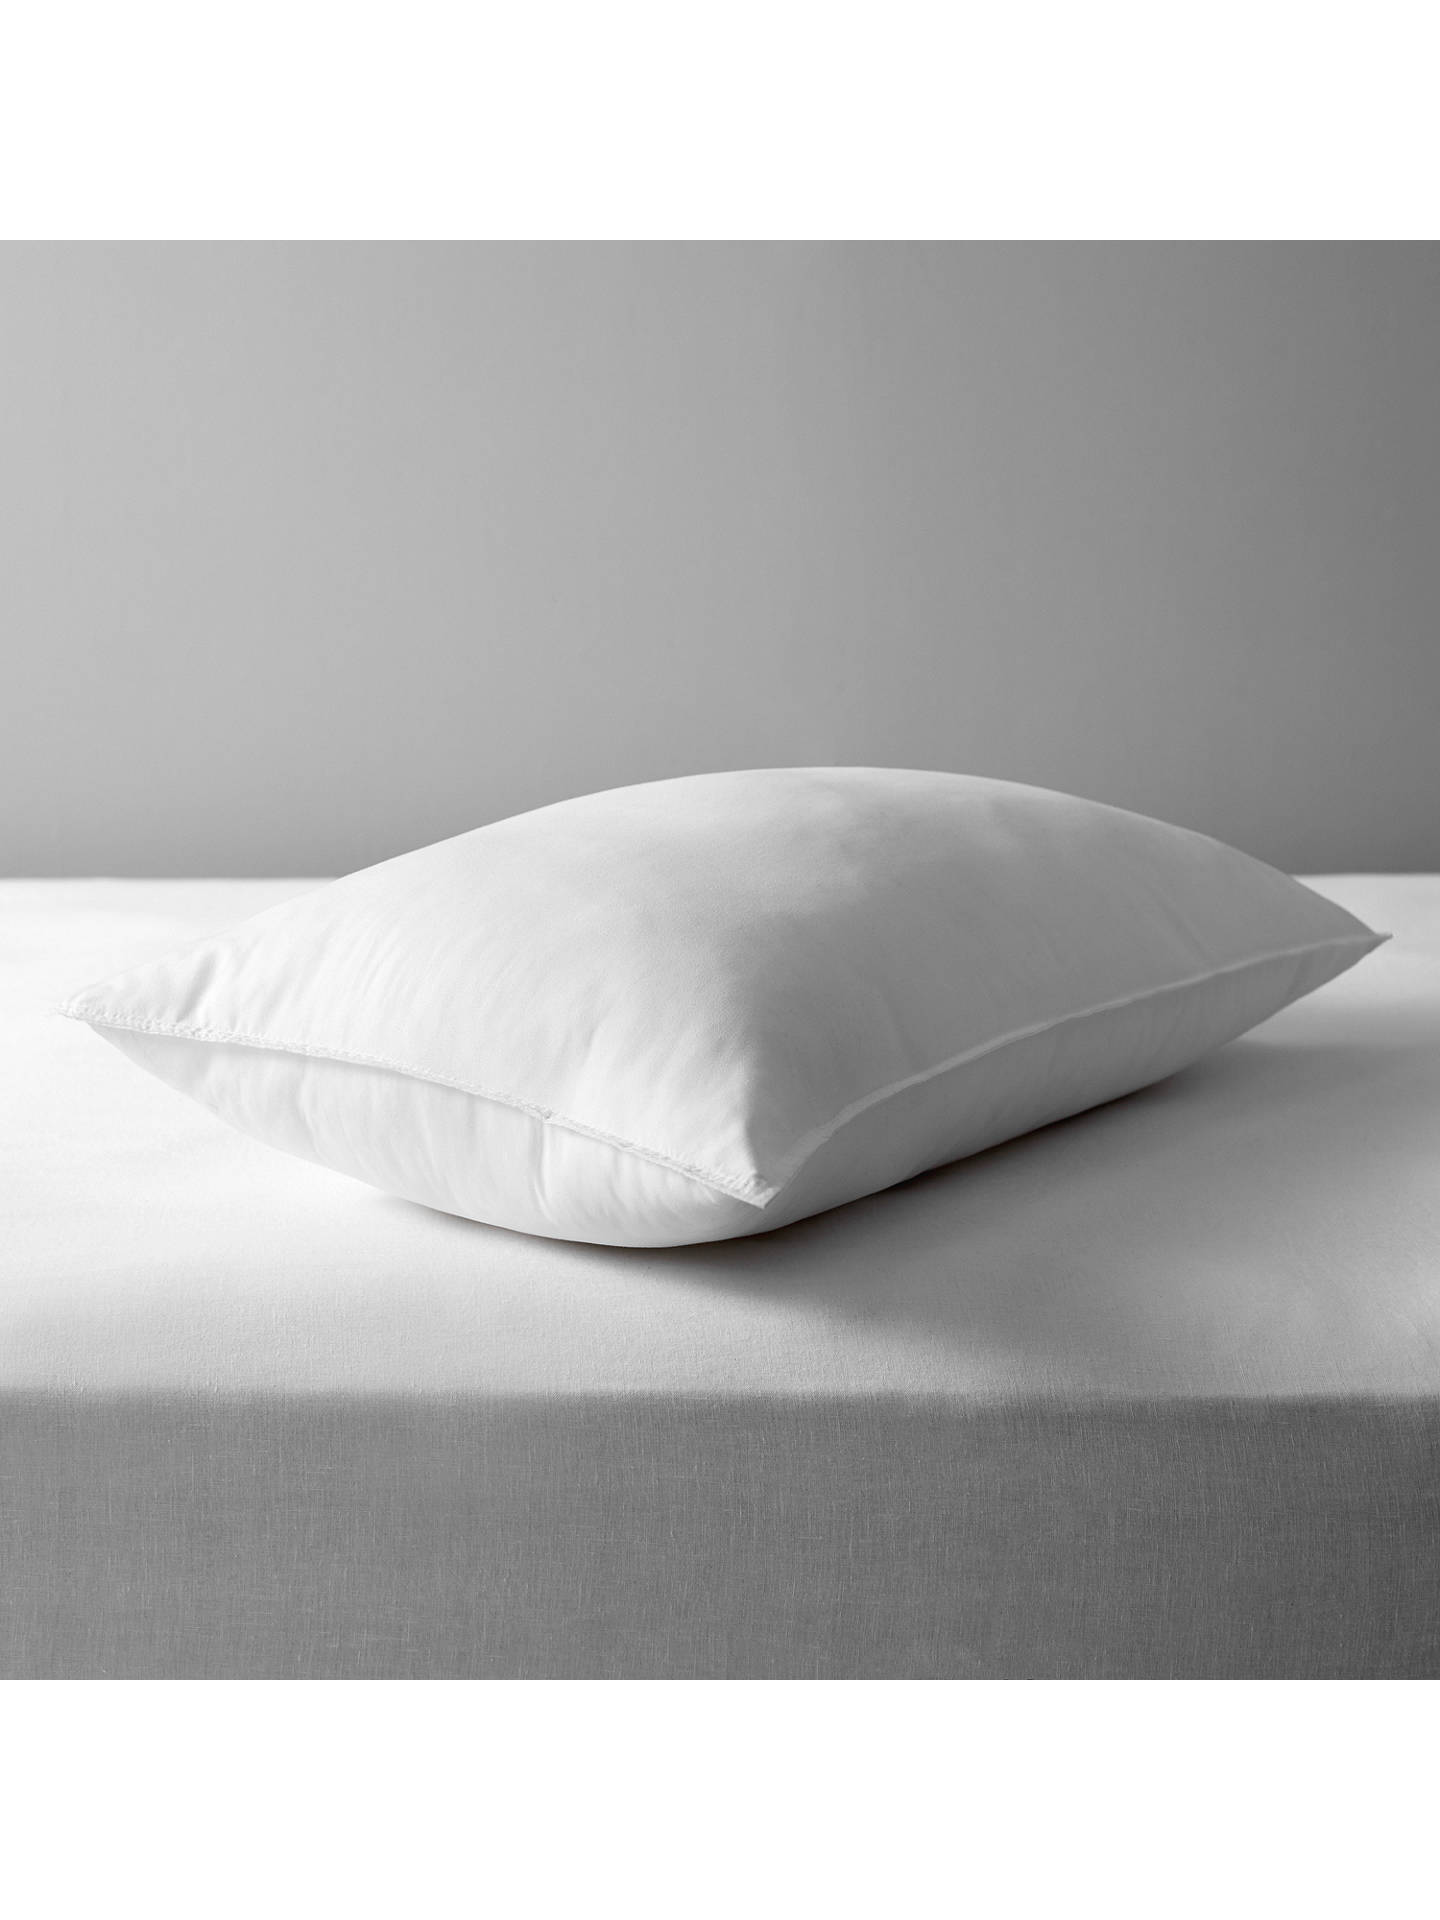 BuyJohn Lewis & Partners Synthetic Soft Touch Washable Standard Pillow, Extra Firm Online at johnlewis.com